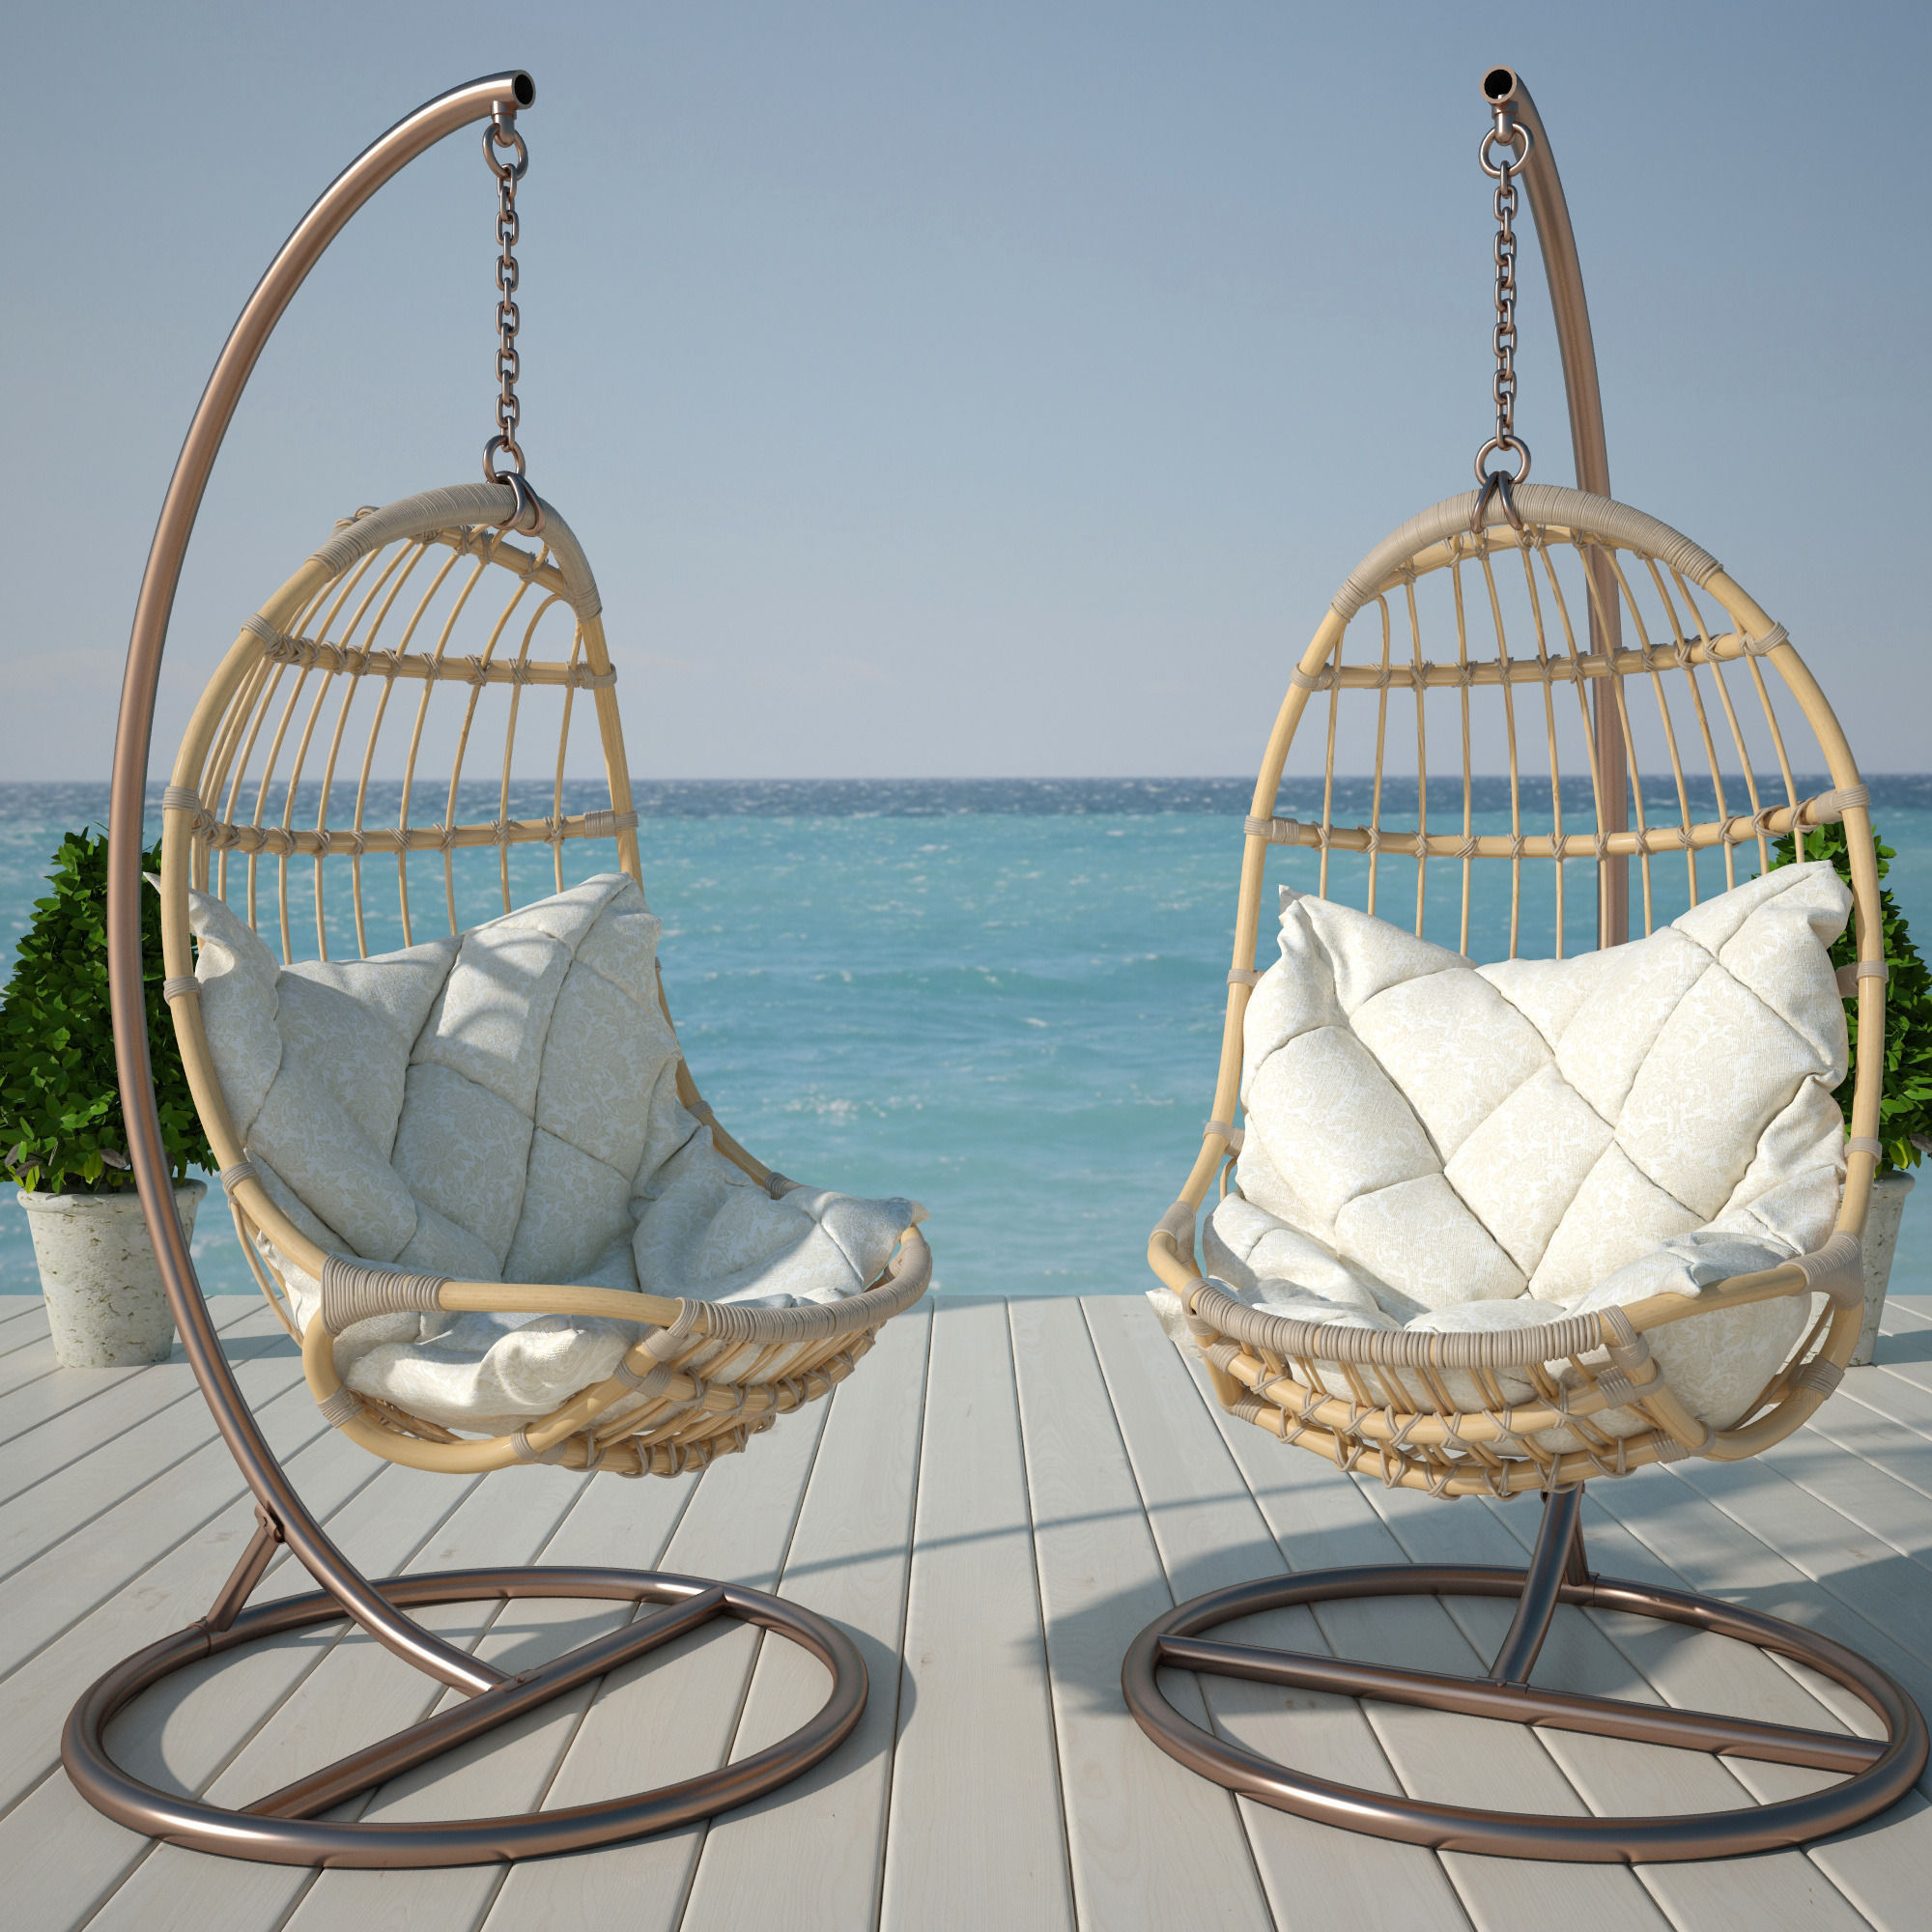 Hanging chair 3d model rigged max obj for Outdoor furniture 3d max